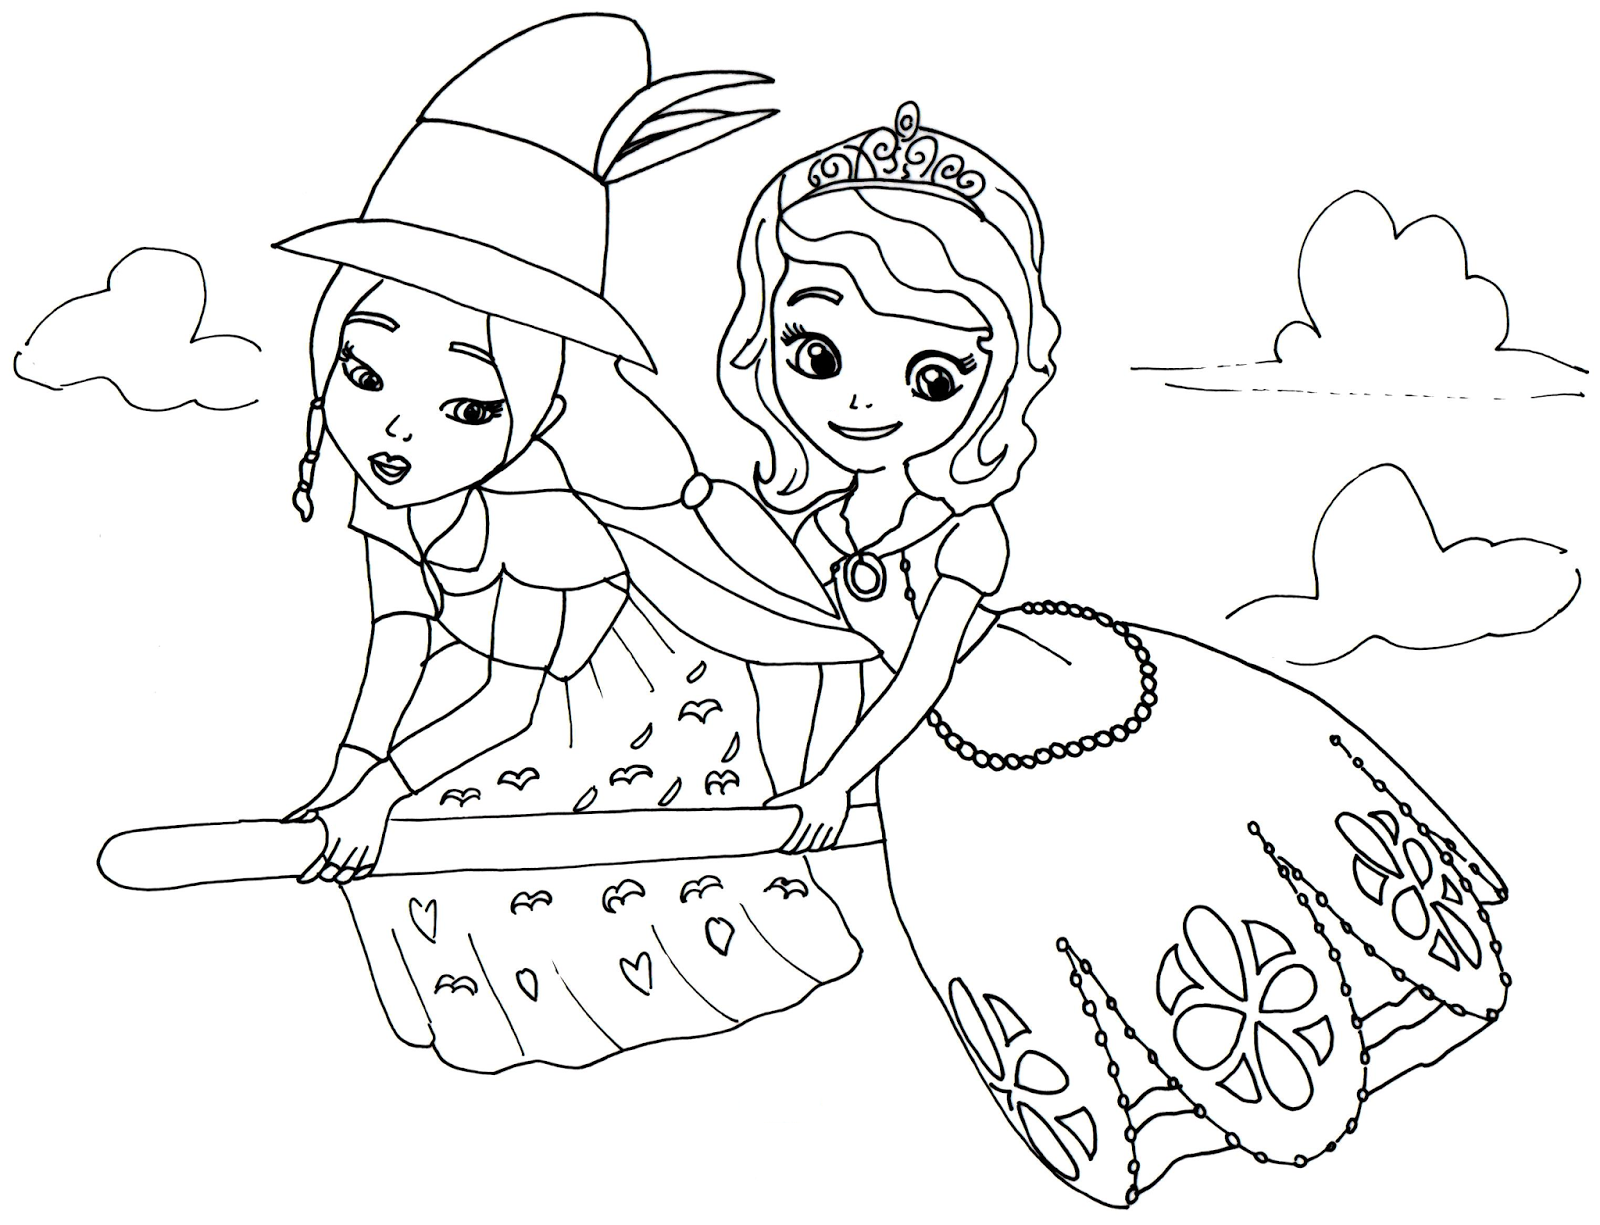 Sofia The First Coloring Pages In 2020 Witch Coloring Pages Disney Princess Coloring Pages Disney Coloring Pages Printables